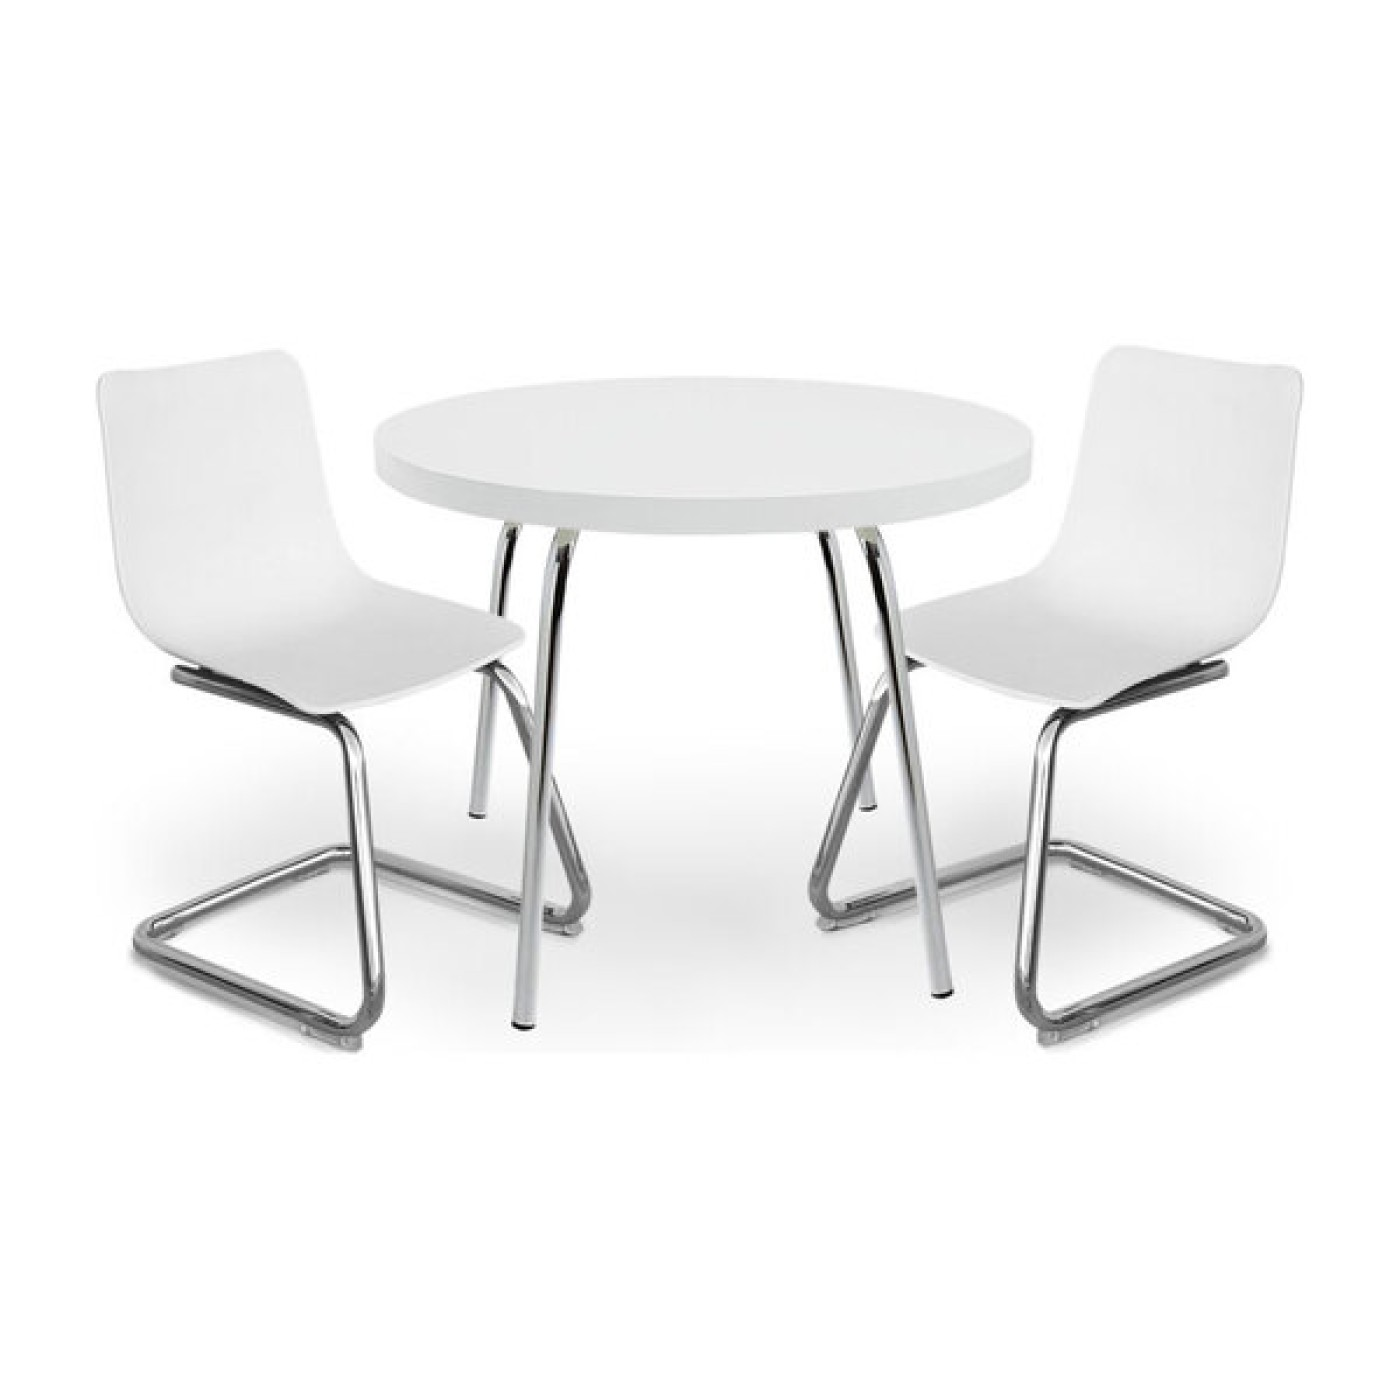 Modern Kids Round Table and Chairs - White